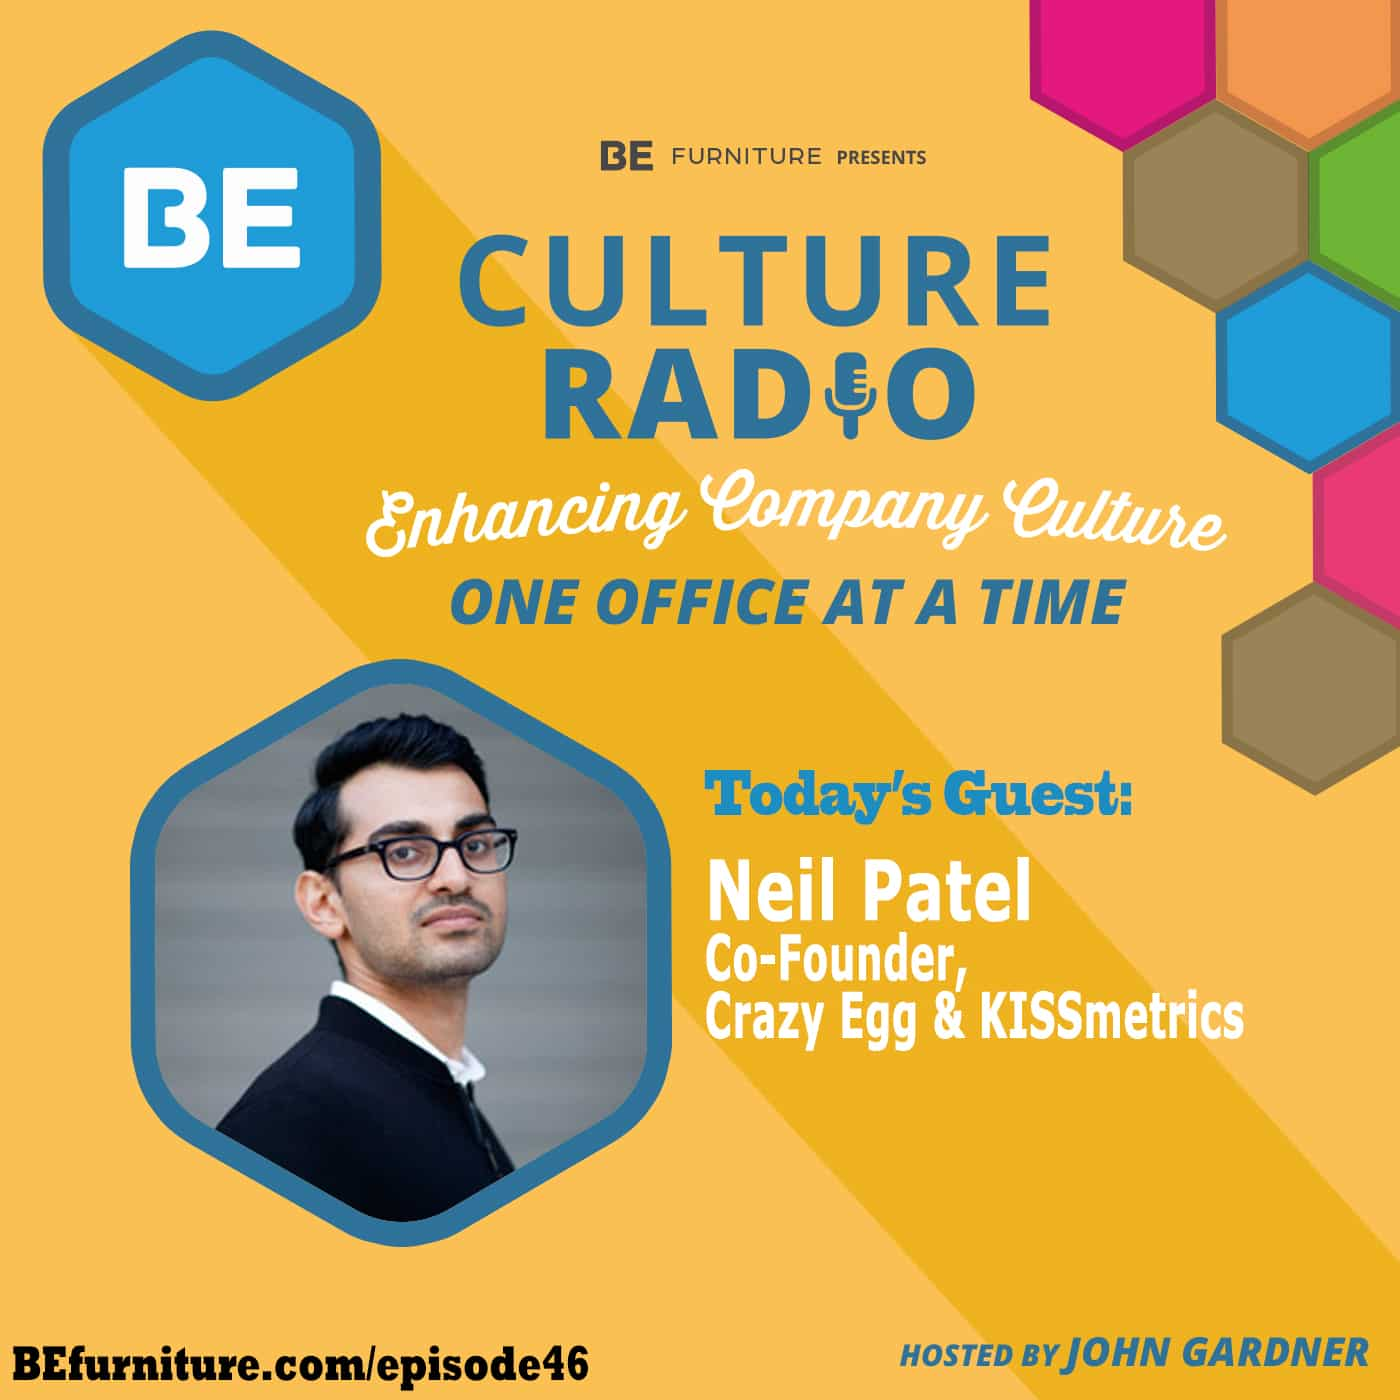 Neil Patel - Co Founder, KISSmetrics & Crazy Egg